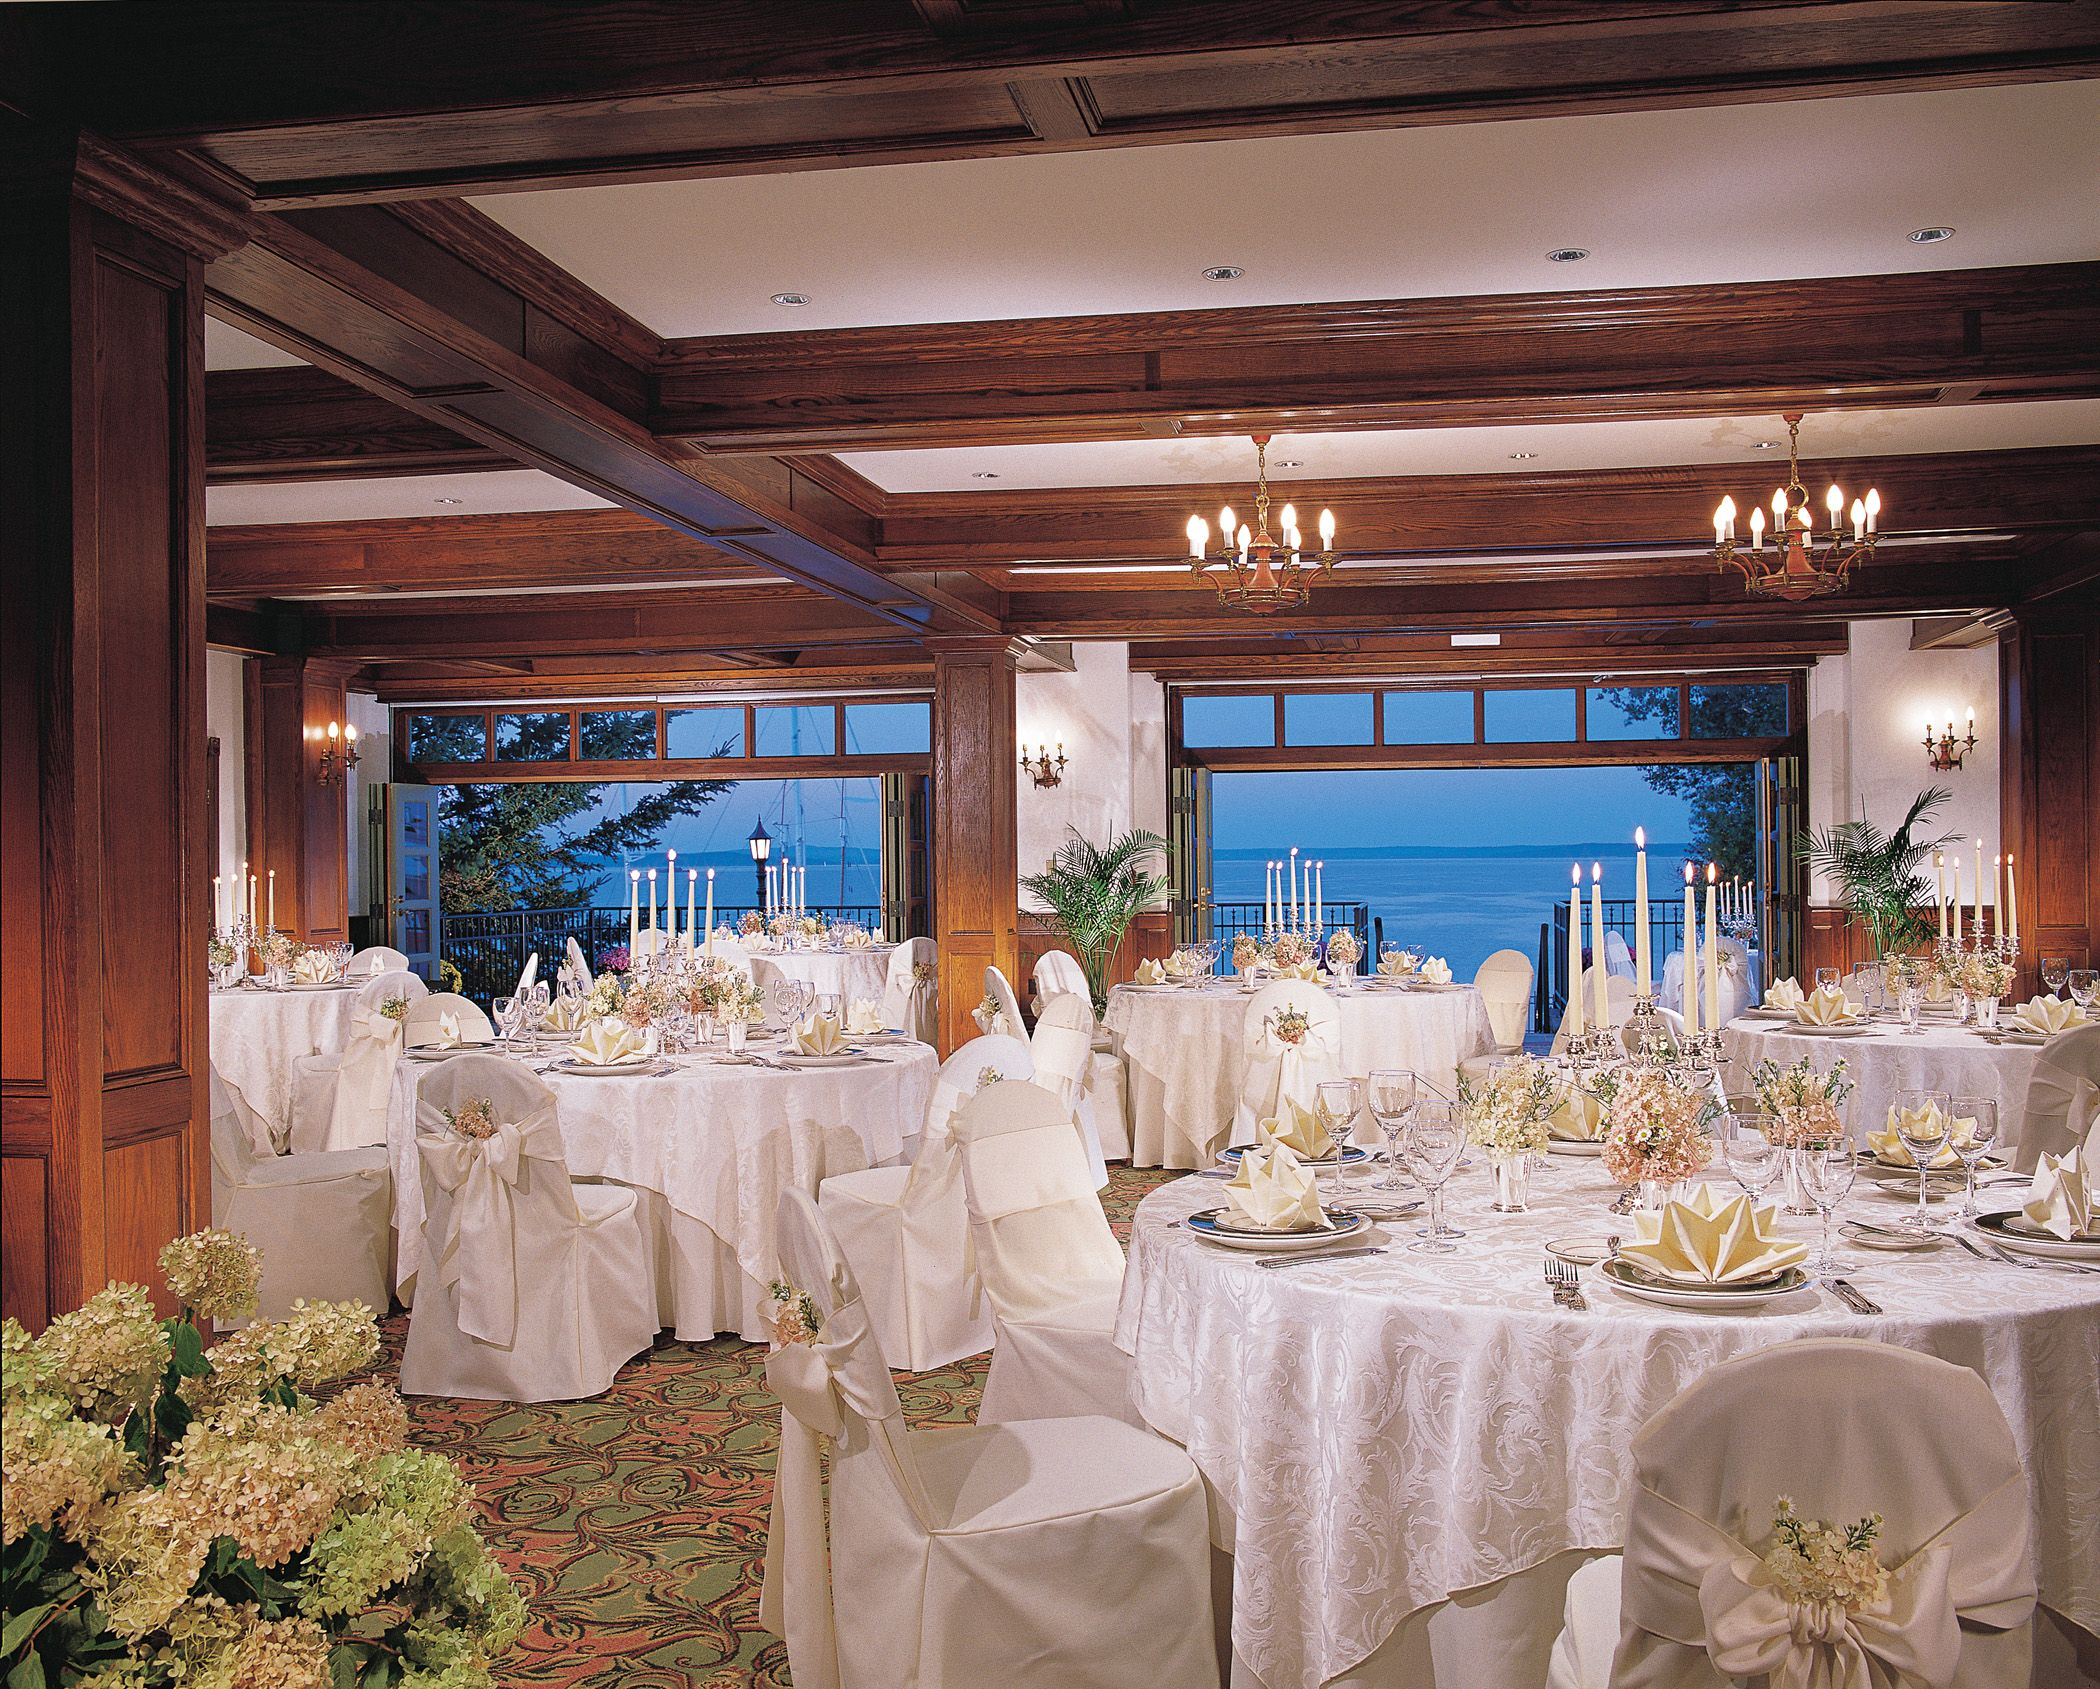 Your Next Wedding Could Be At The Bar Harbor Regency